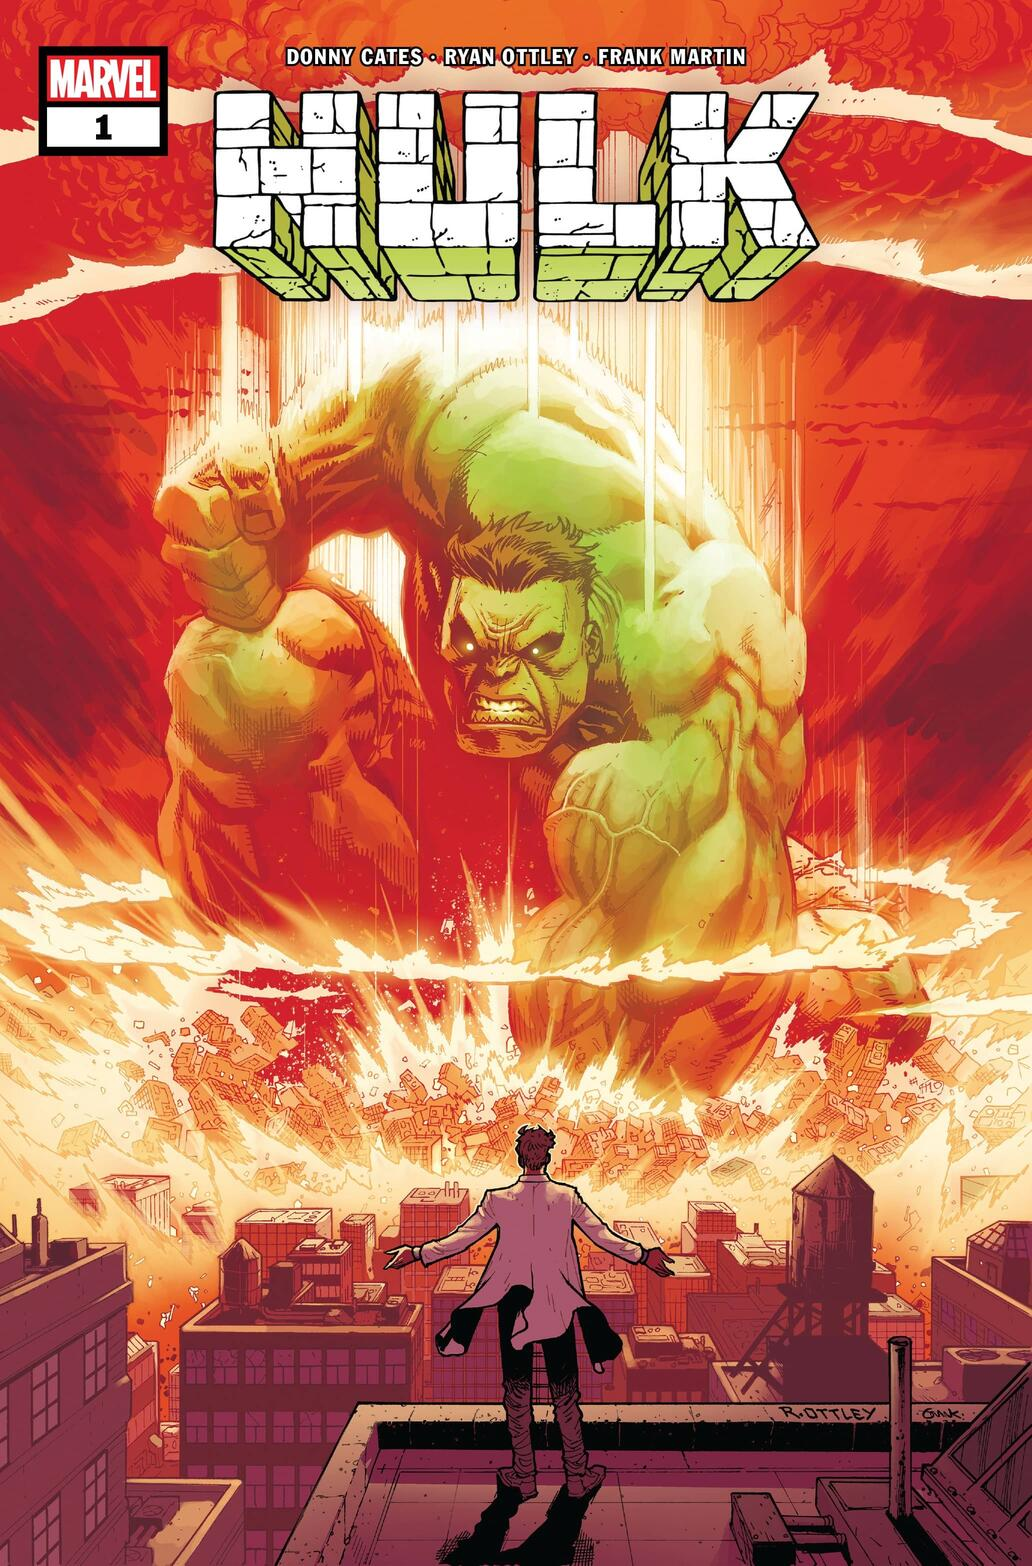 Donny Cates and Ryan Ottley join forces for Hulk this November